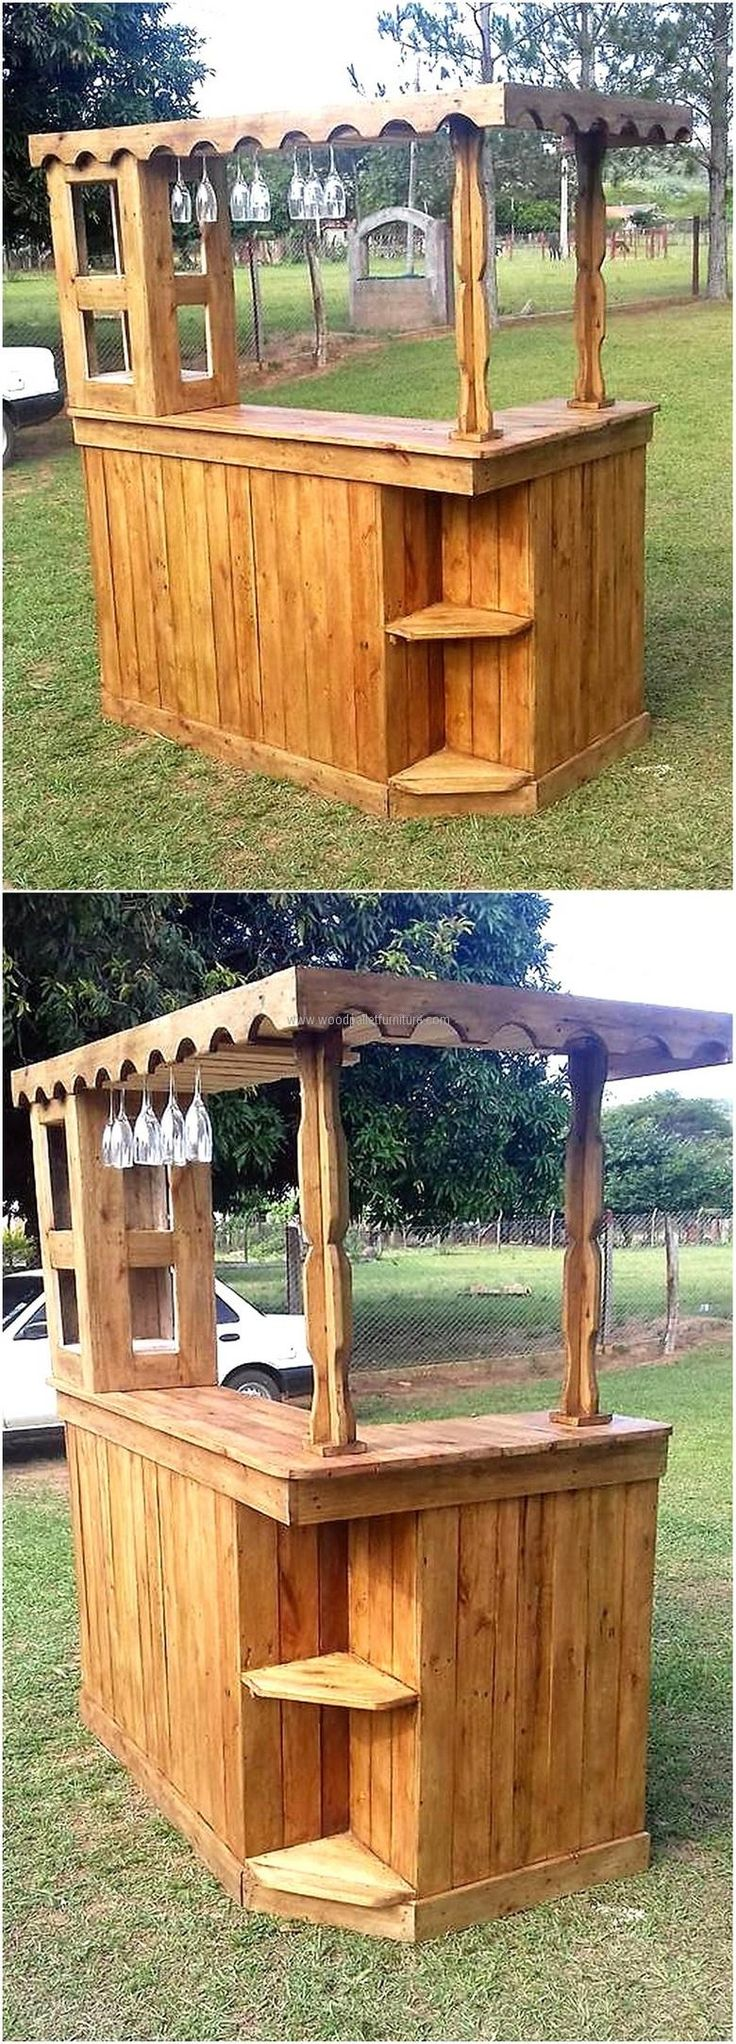 Here is a good idea for the individuals who are planning to set a stall in any park or any other recreational place, it is not difficult to create and it is perfect according to the demand of a bar plan with the fixed place to hang the glass.